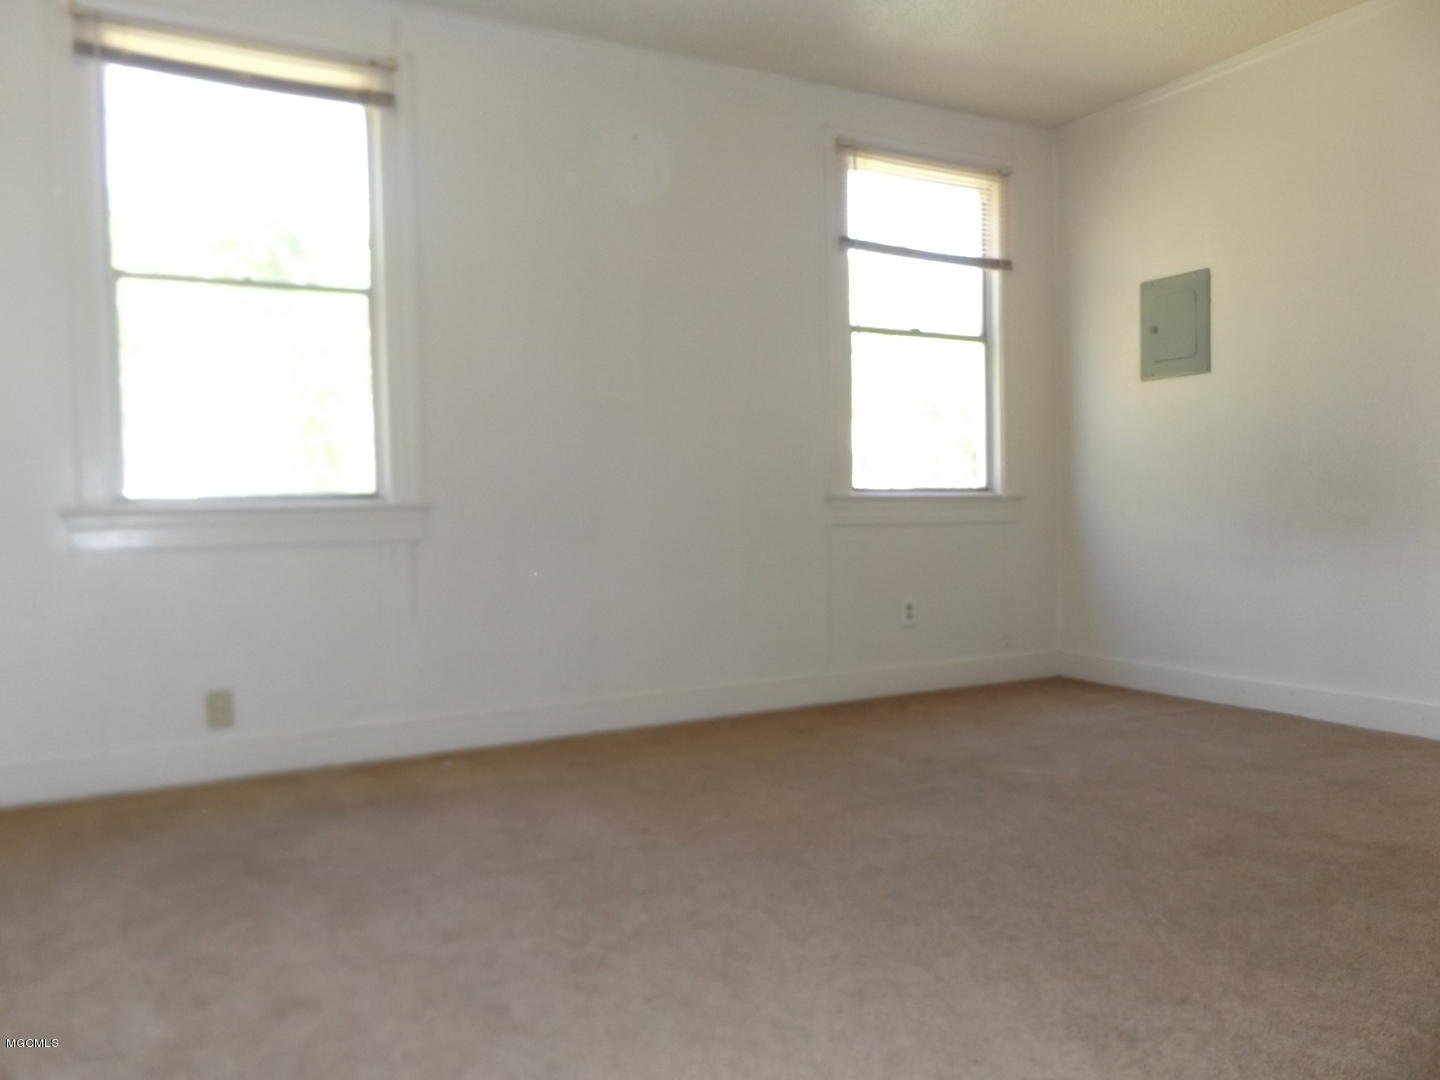 2125 22nd Ave, Gulfport, Mississippi 39501, 1 Bedroom Bedrooms, ,1 BathroomBathrooms,Rental,For Sale,22nd,340902